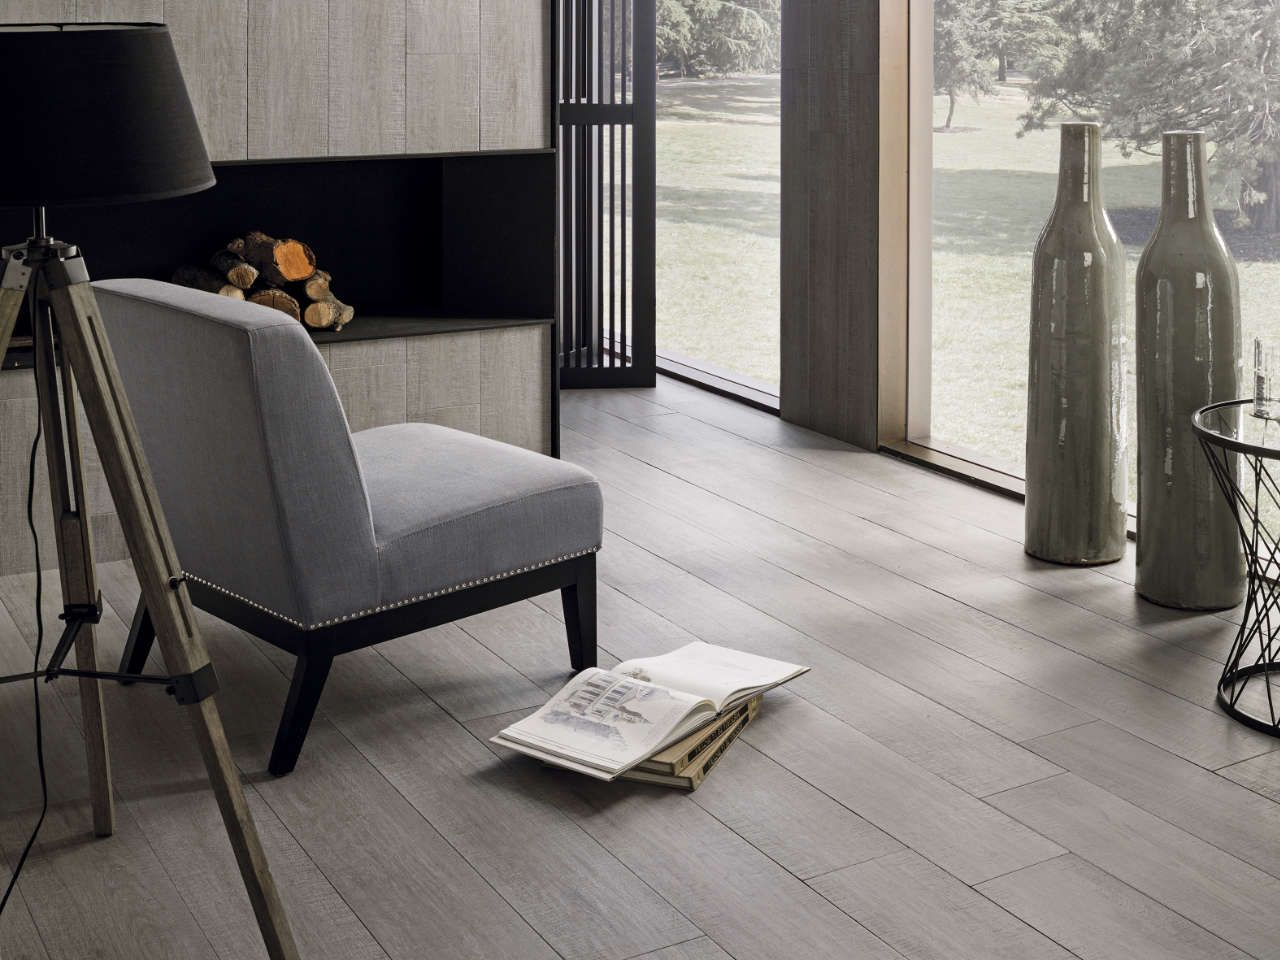 Pin By Louise Morrill On Dch Urban Minimal Wood Effect Tiles Flooring Home Decor